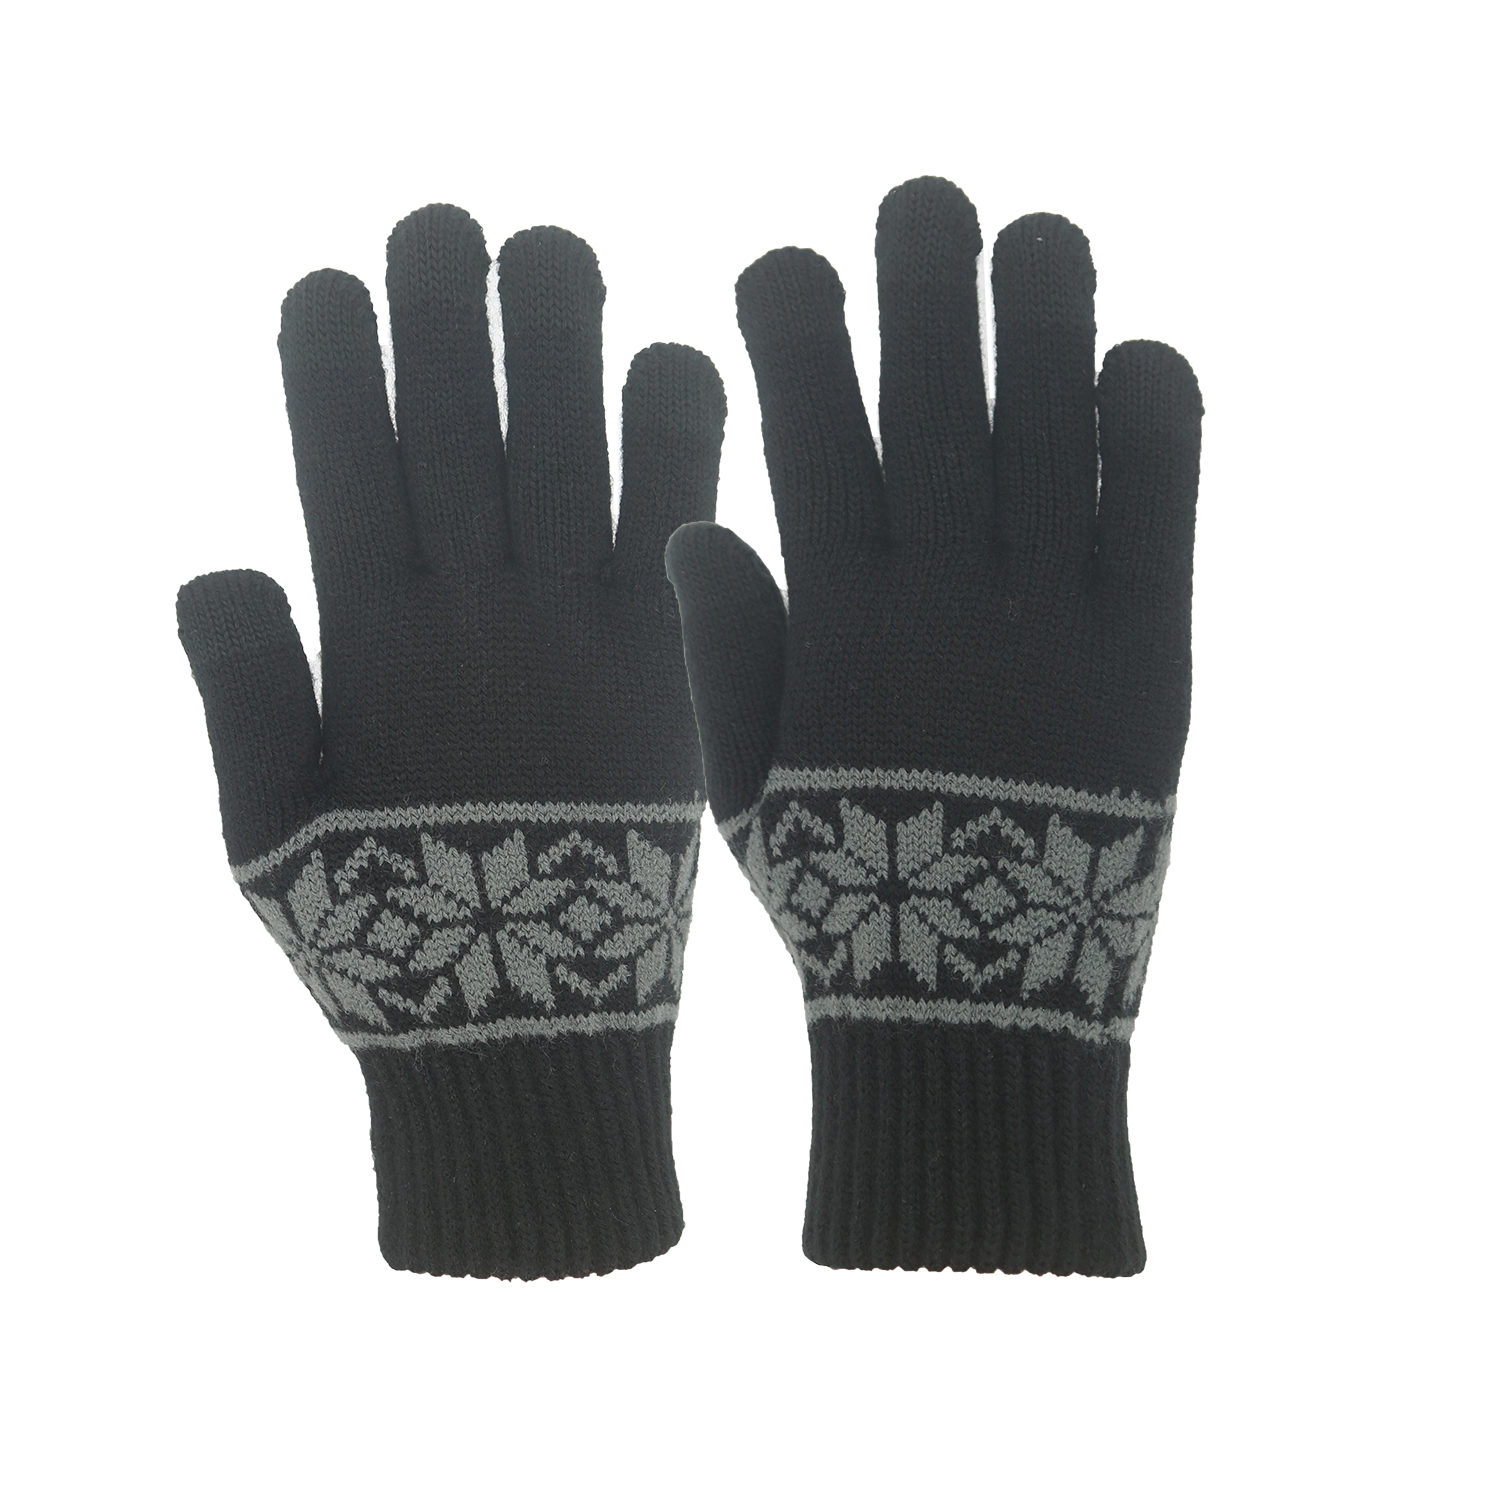 FIVE Finger Jacquard Hand Knitted Magic Touch Screens Gloves for Outdoor